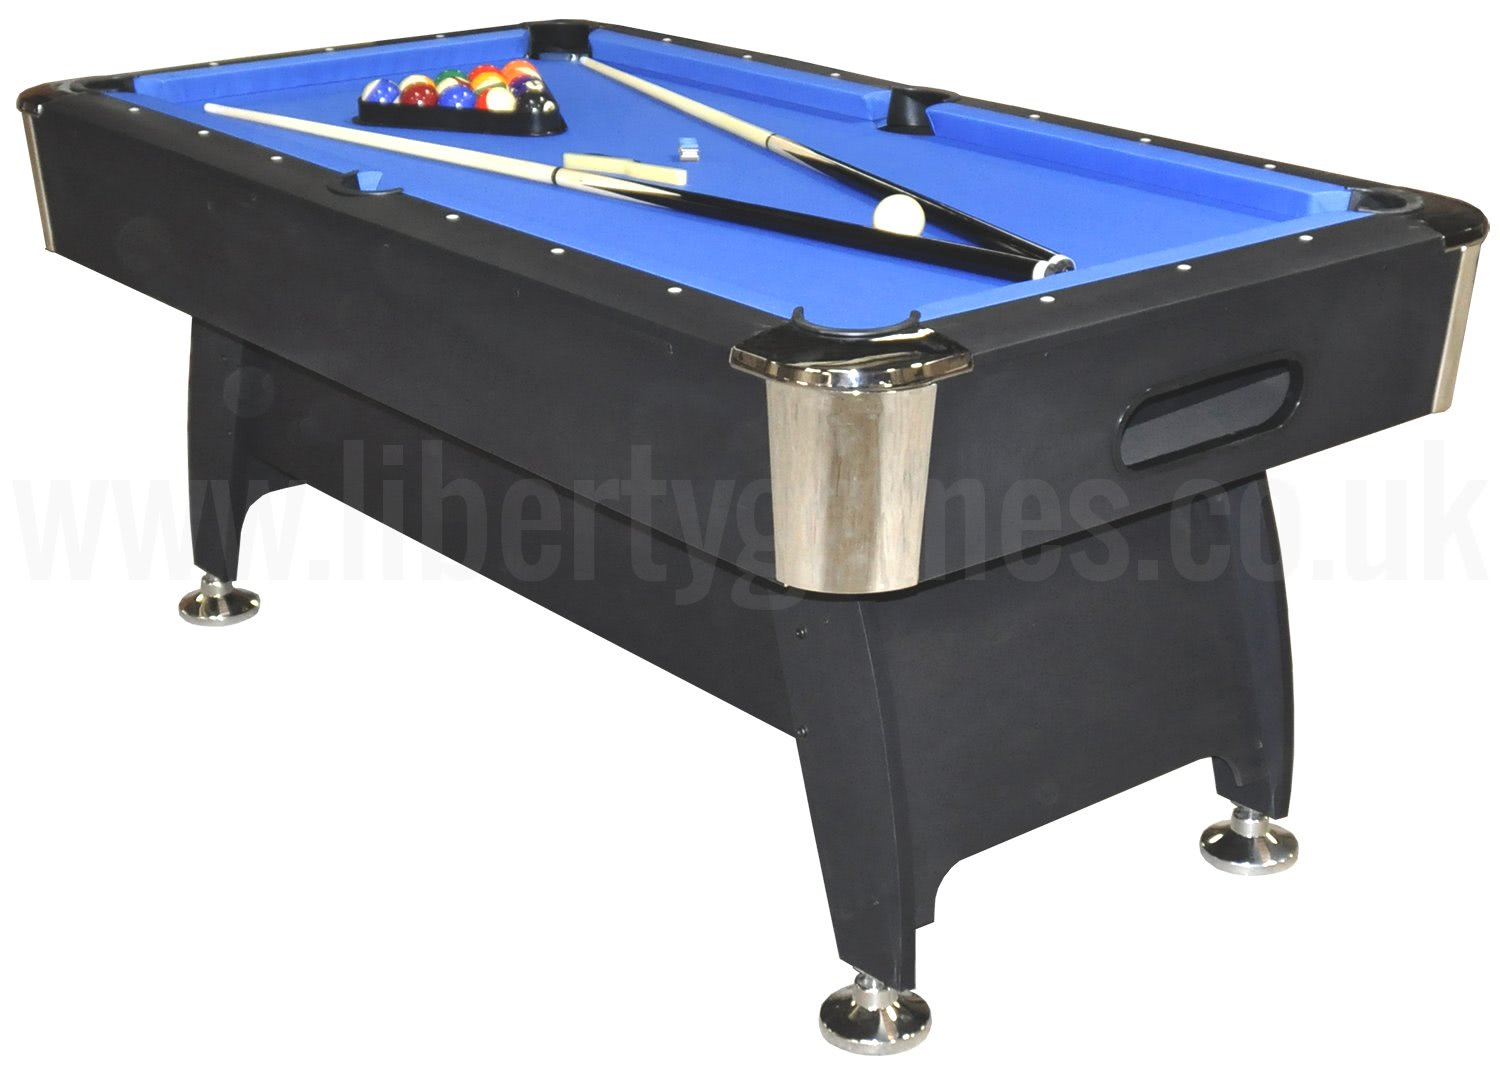 Strikeworth pro american deluxe 6ft pool table liberty games for Table 6 feet